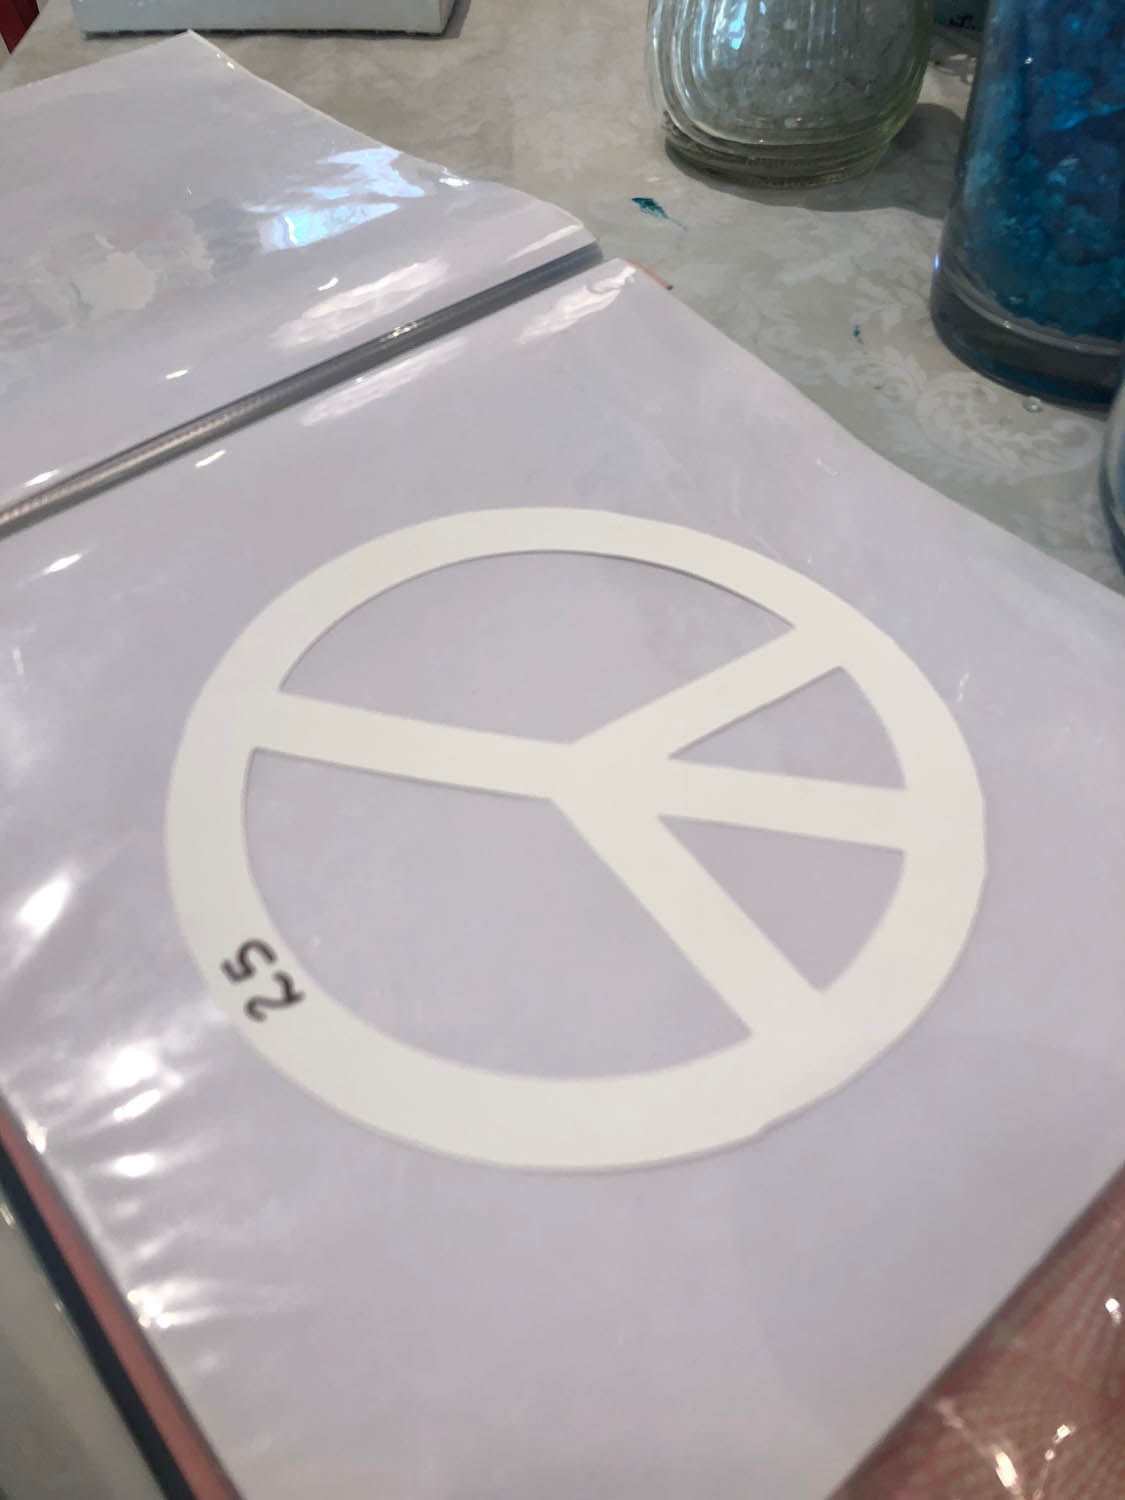 Template for peace symbol at The Shard Shop class